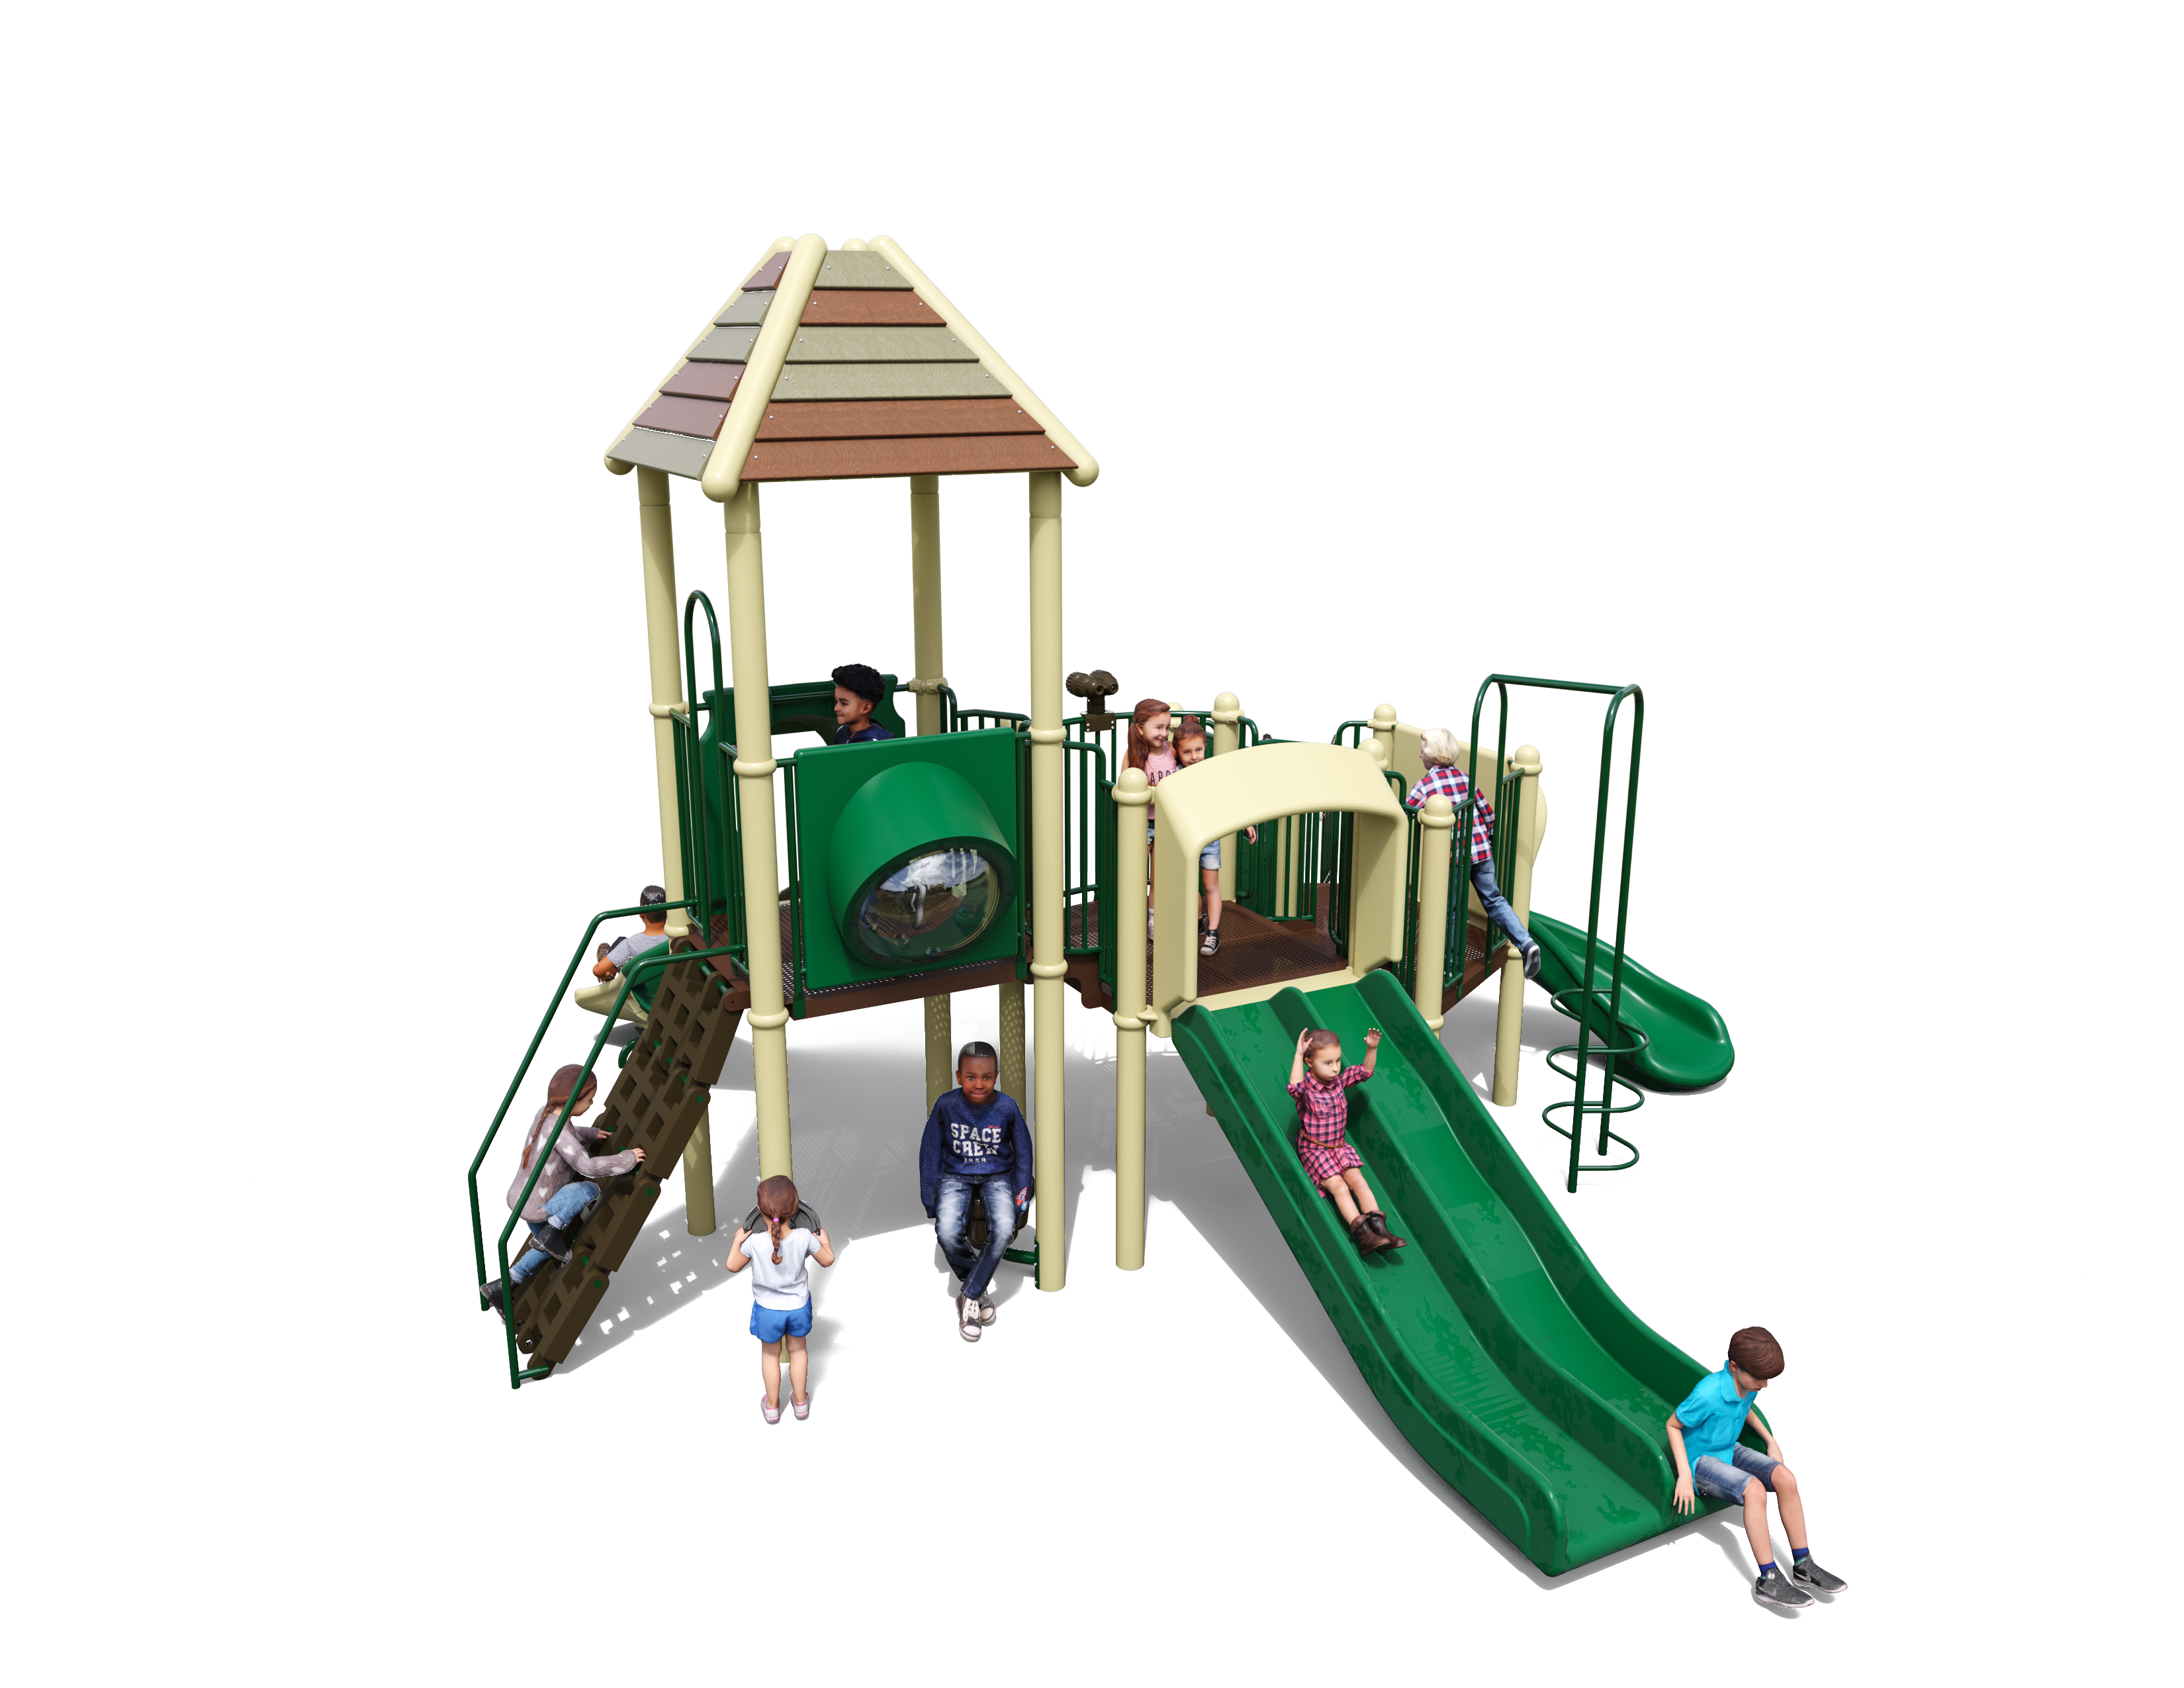 Kids' Choice Structure (714S634)